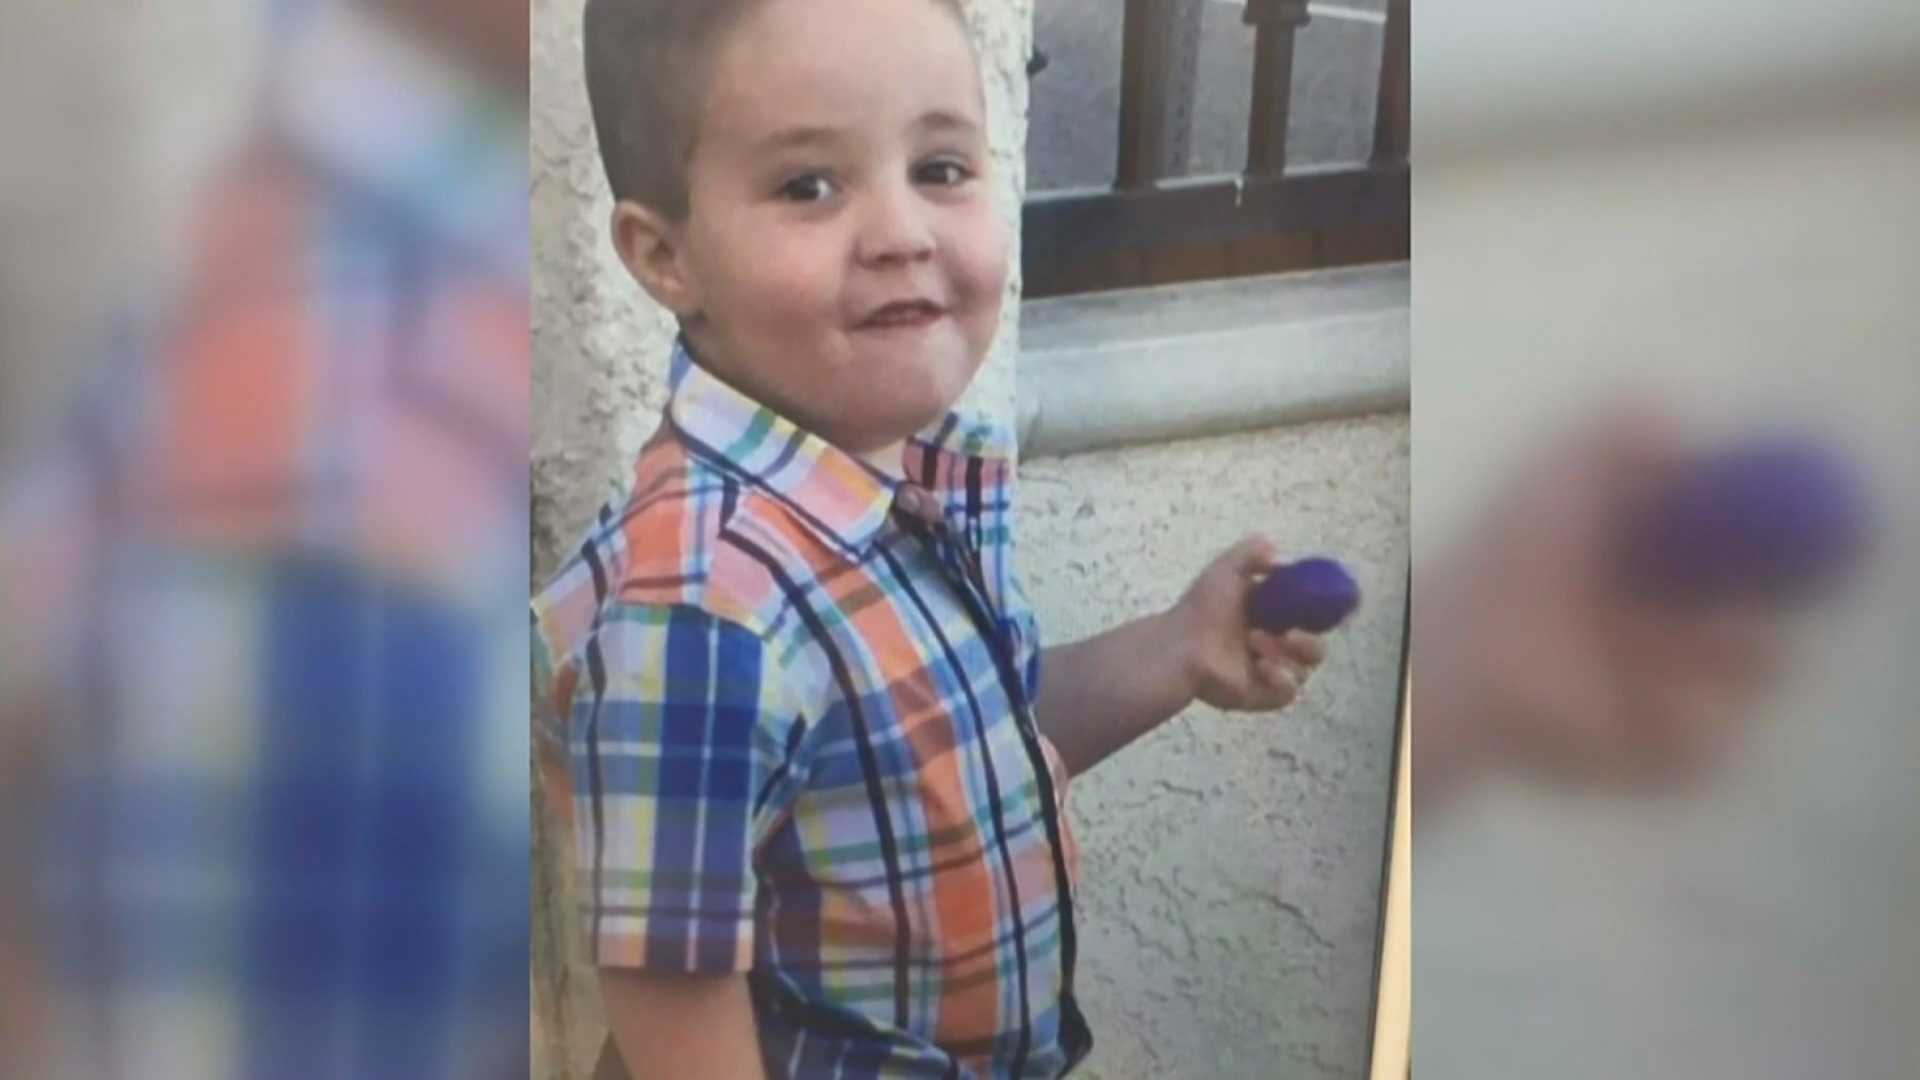 Body found in hunt for boy, 5, who disappeared after Disney trip